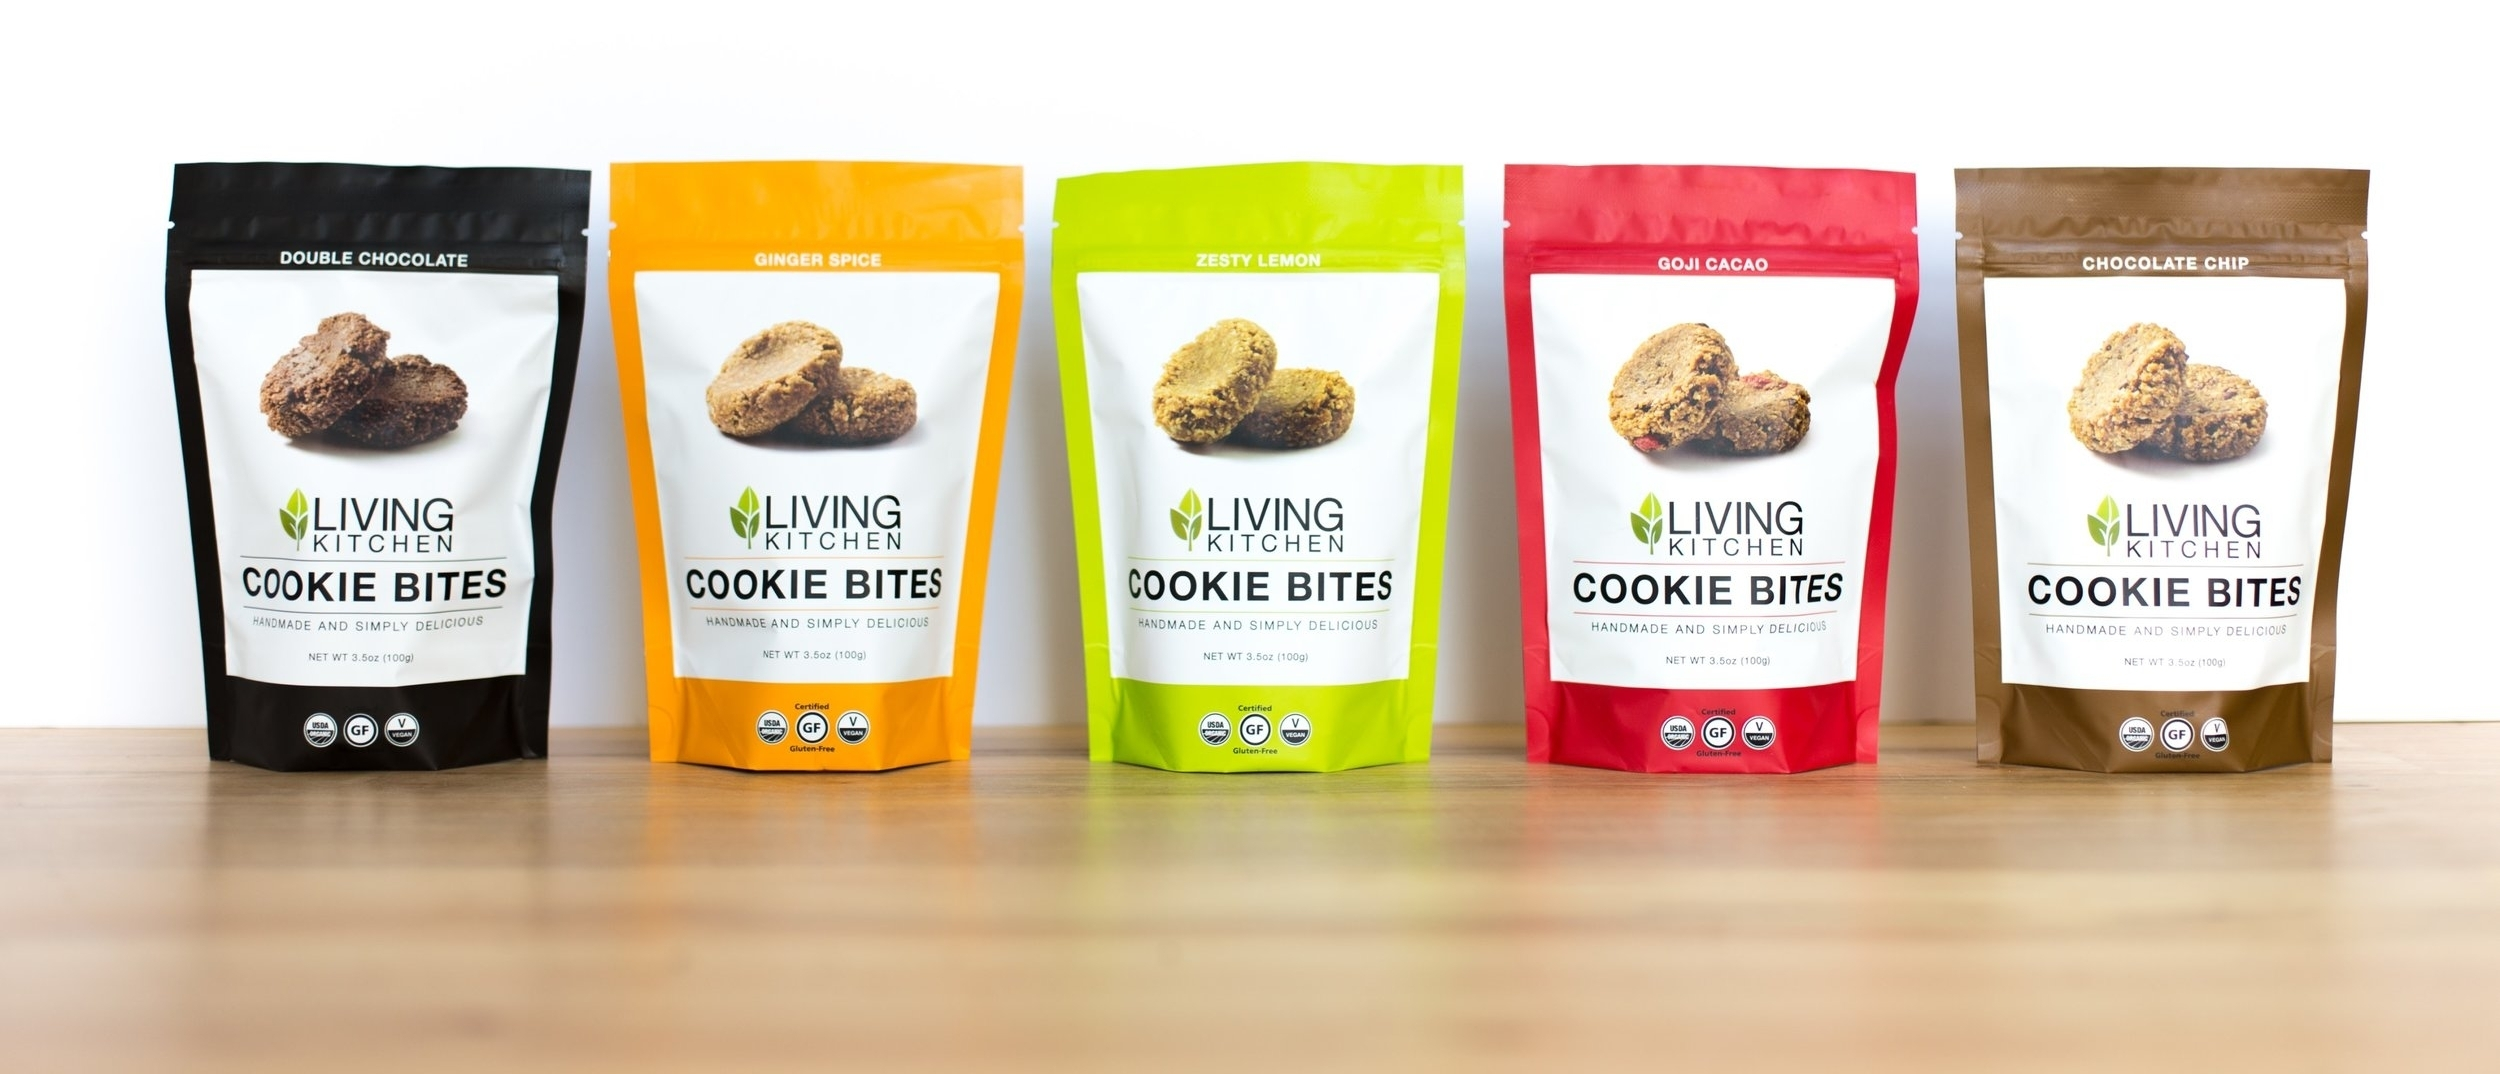 Try all five delicious flavors: Double Chocolate, Ginger Spice, Zesty Lemon, Goji Cacao, and Chocolate Chip